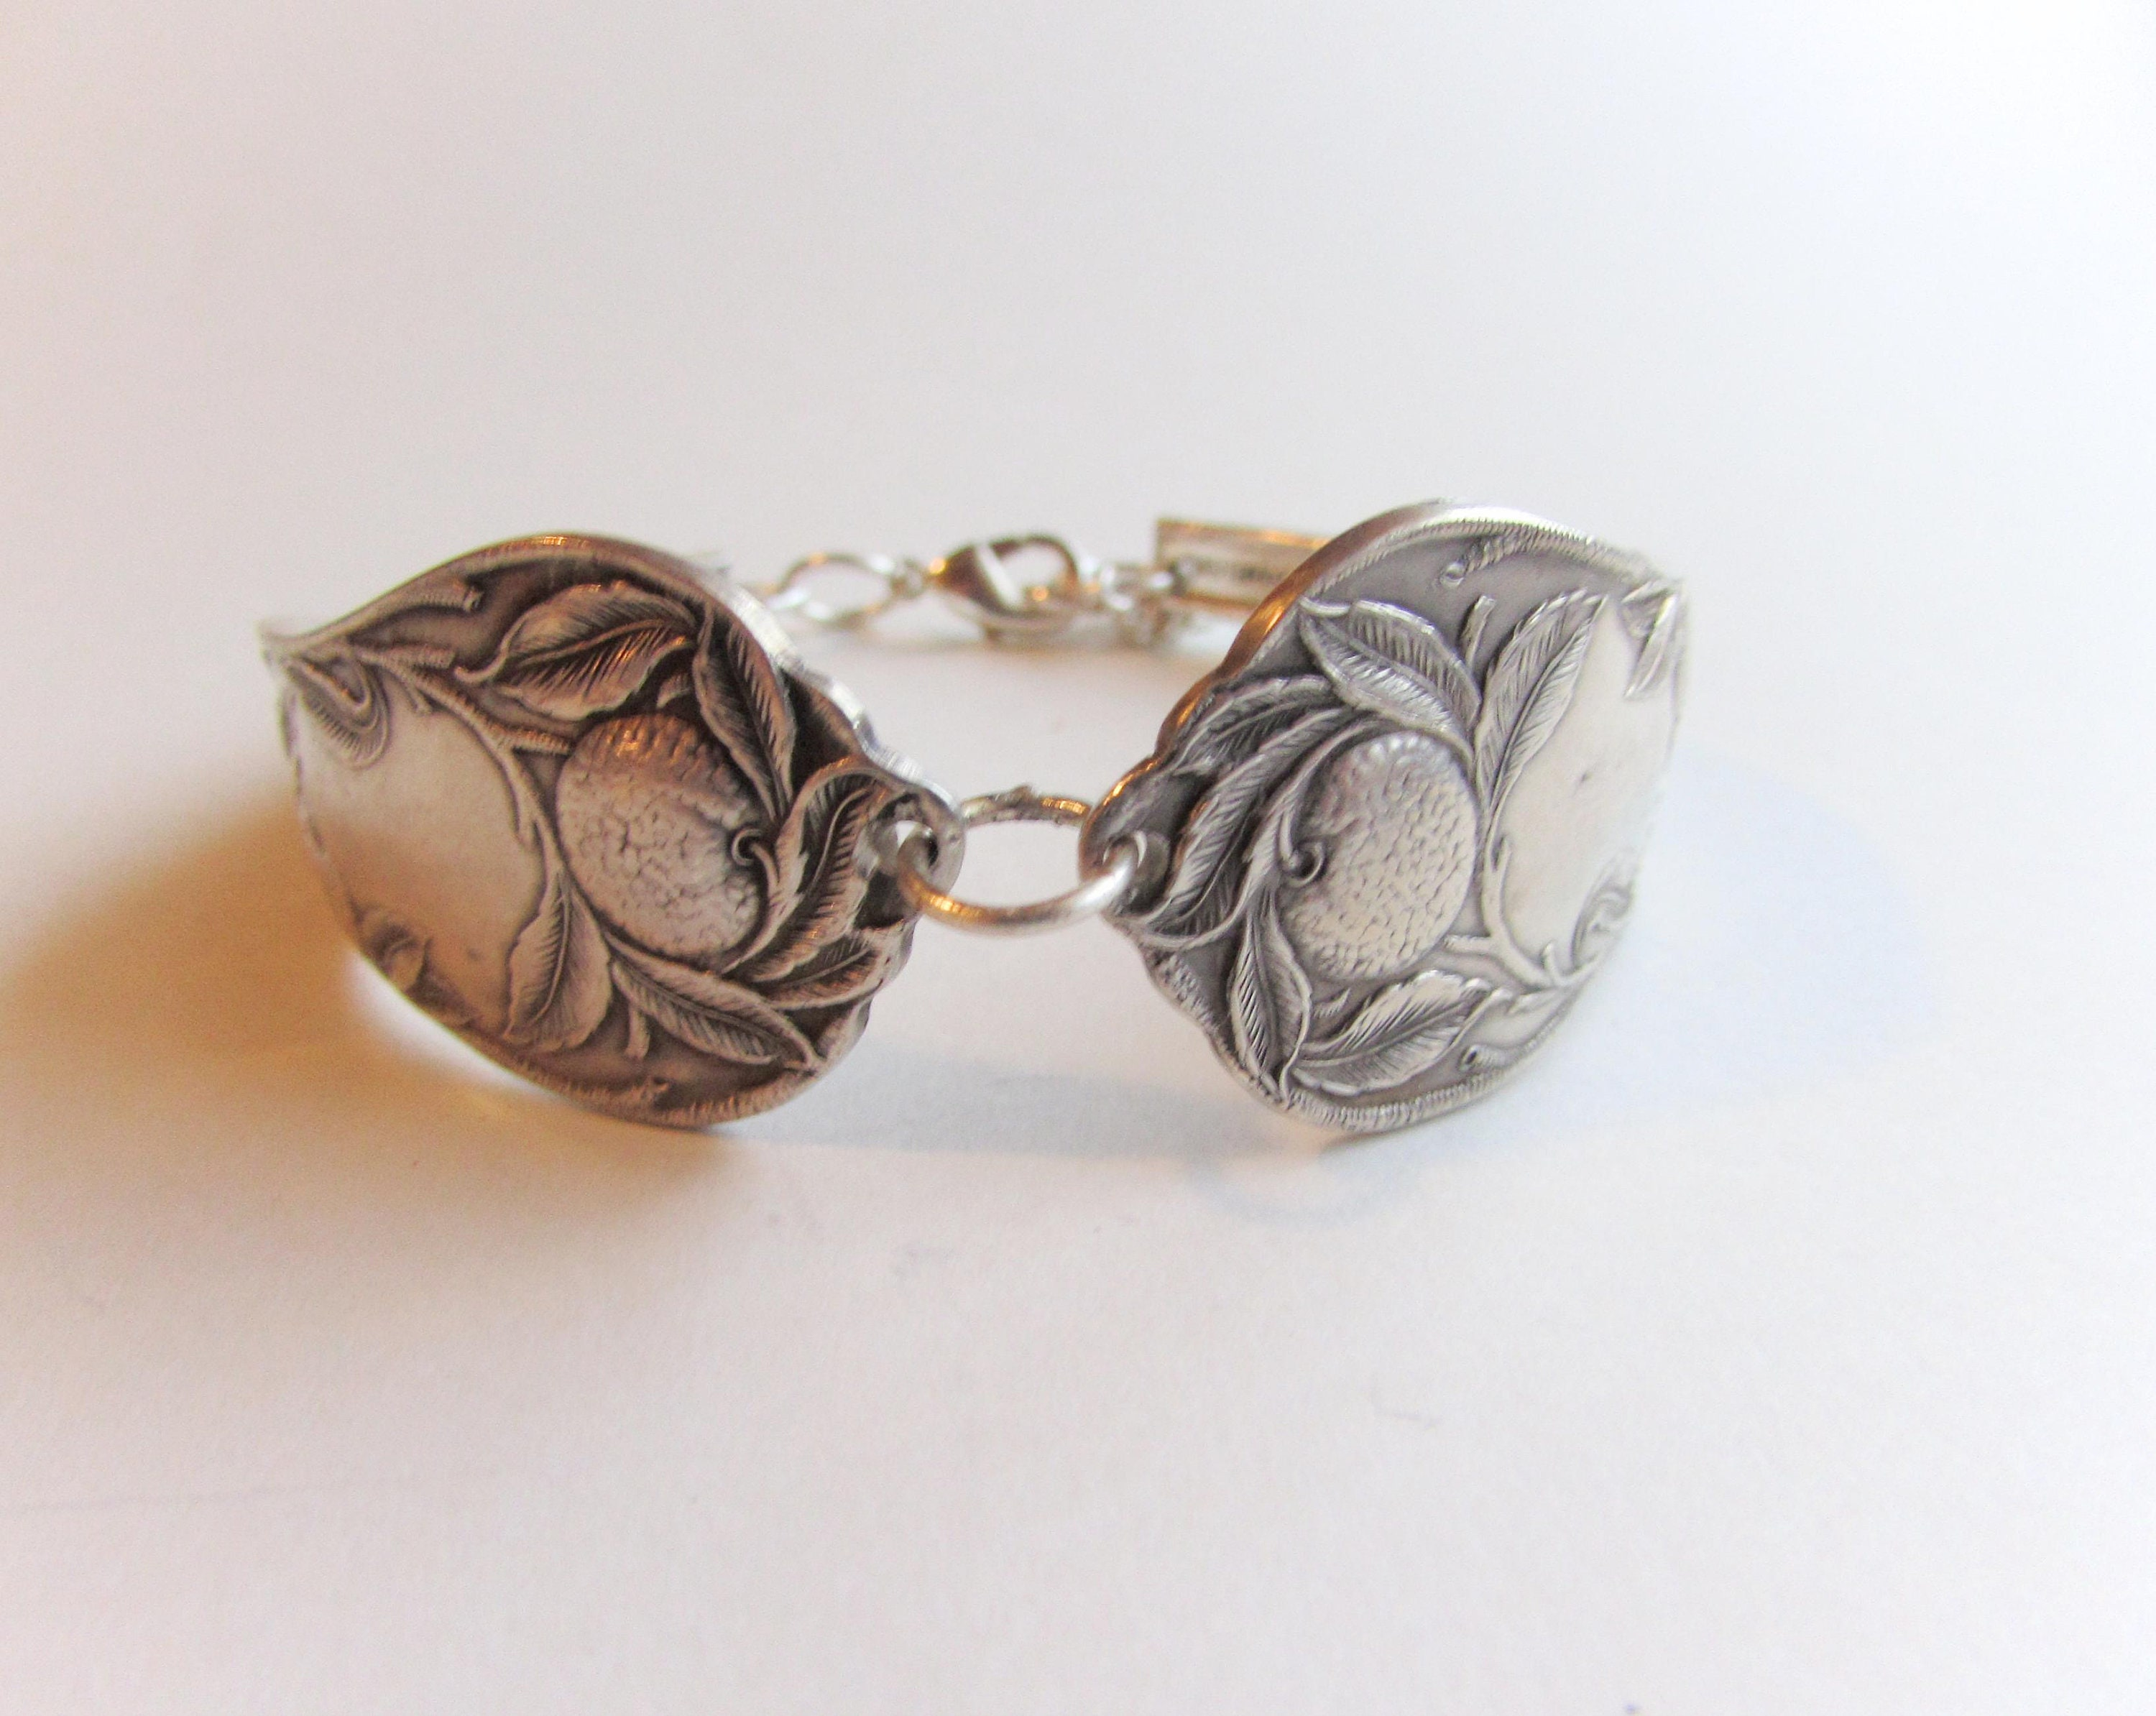 1910 Silver-filled spoon bracelet